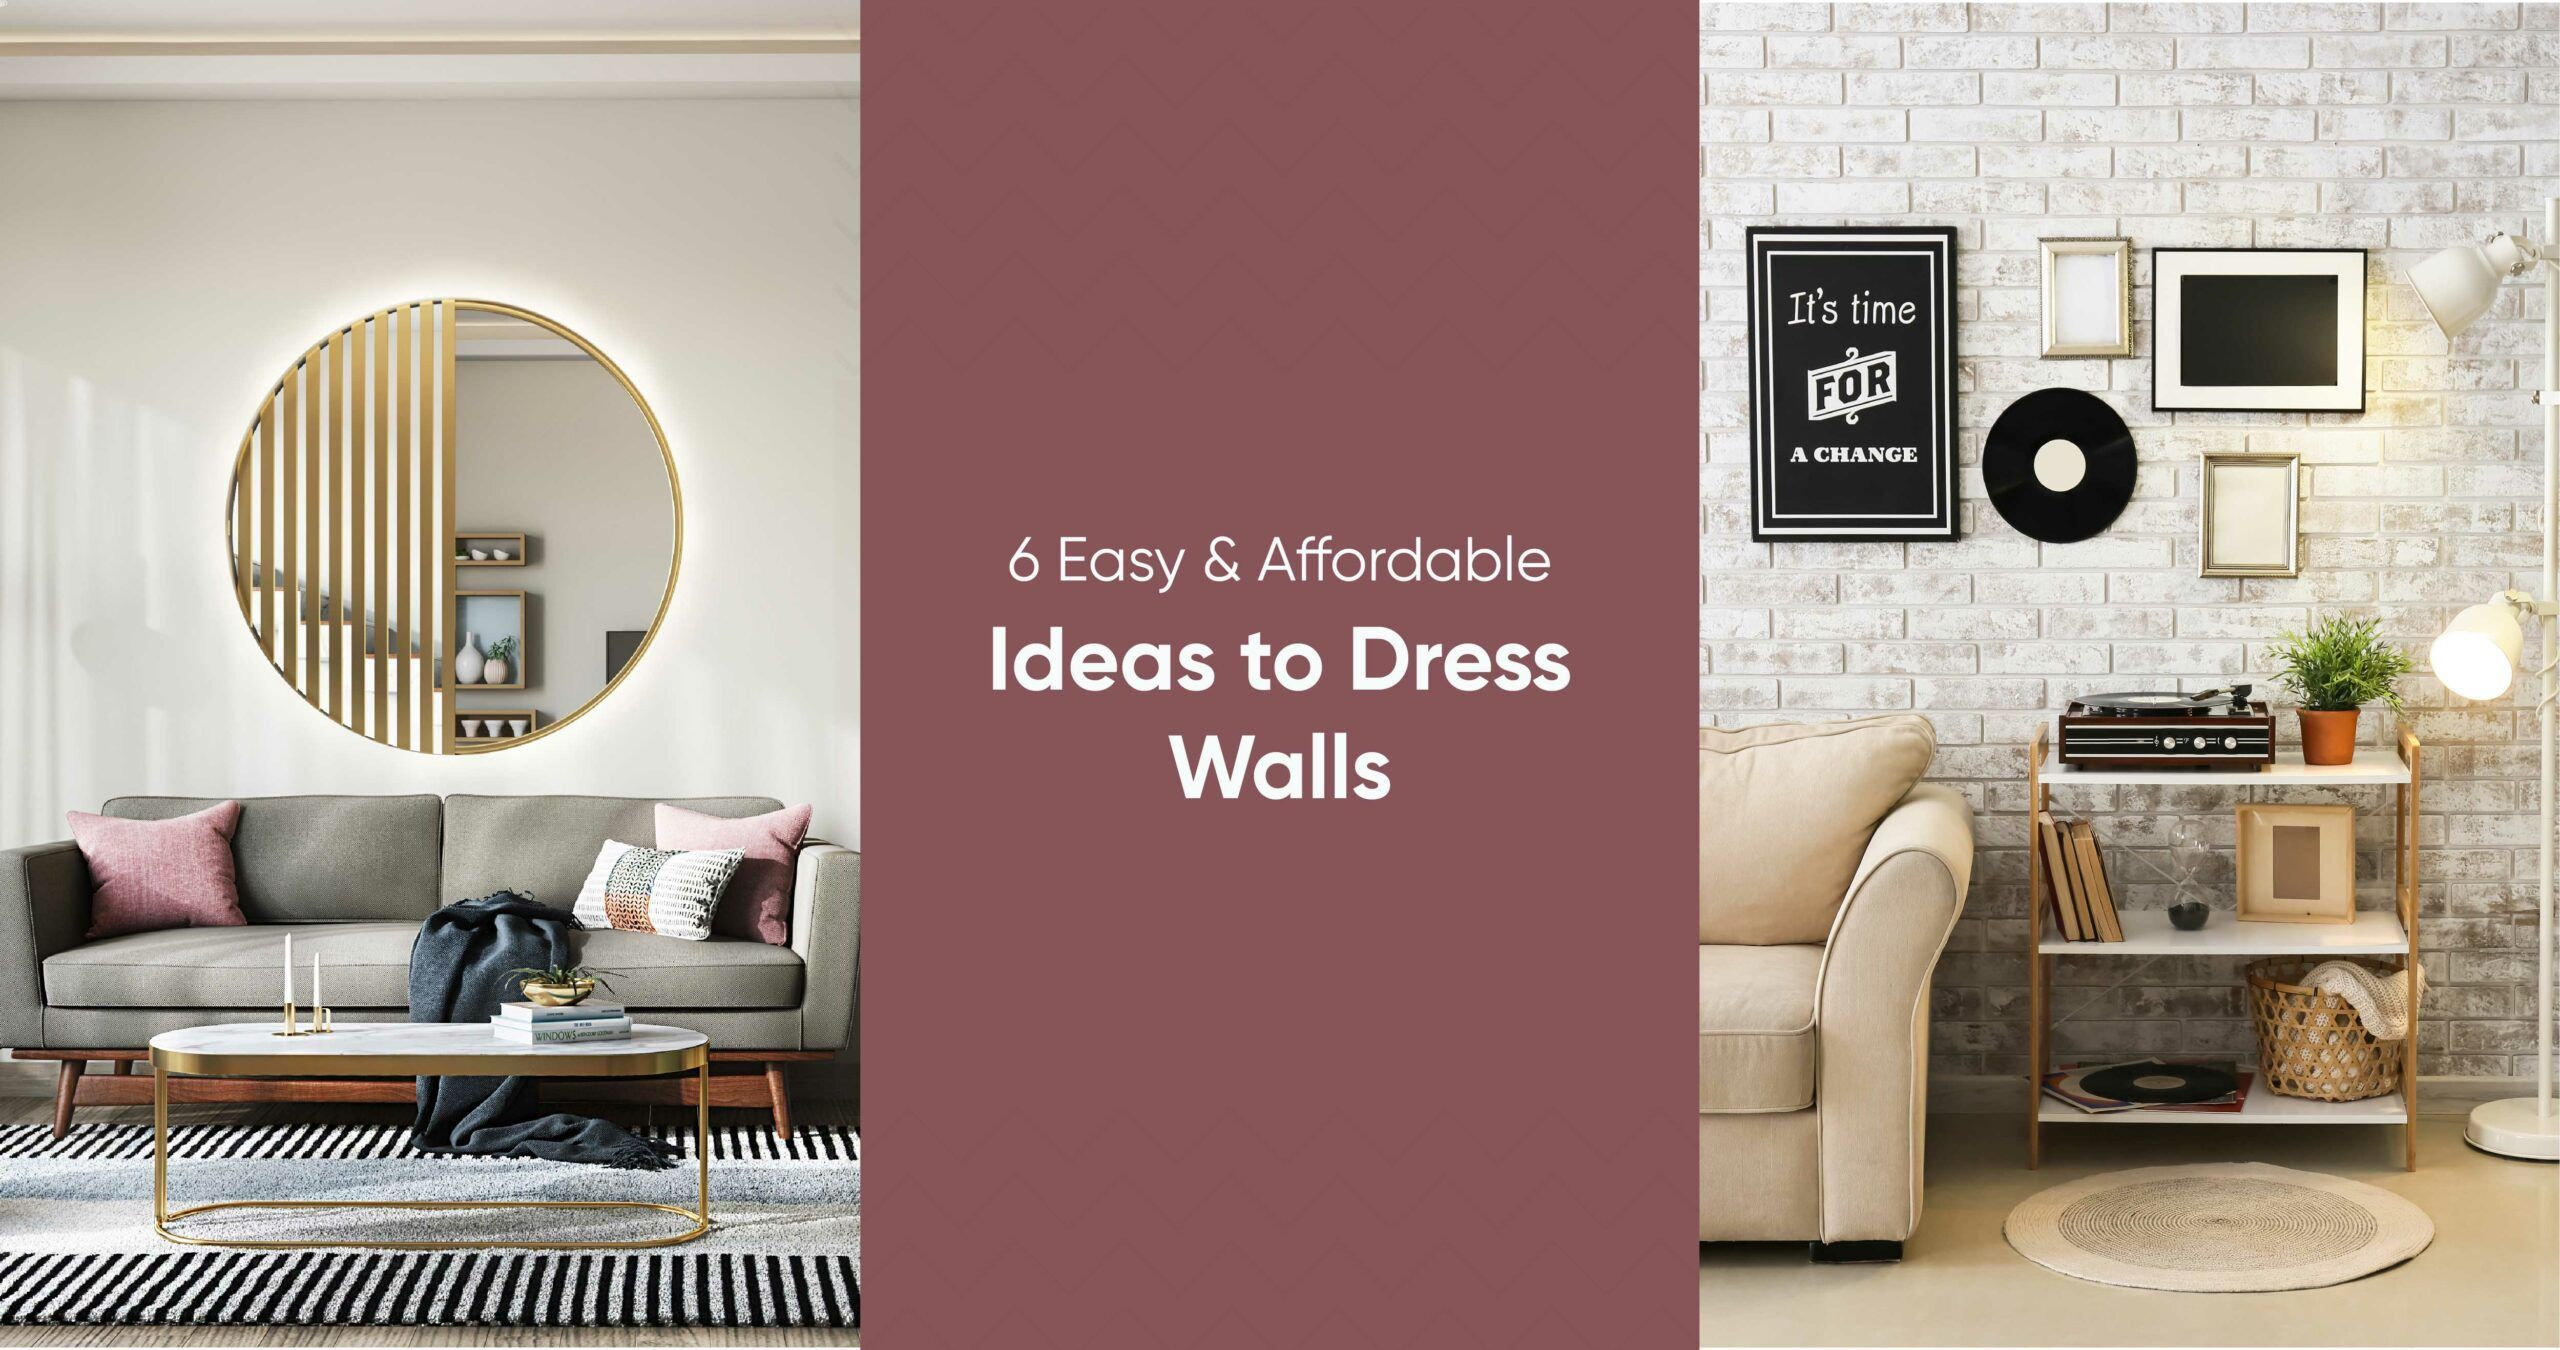 How to Get Insta-worthy Walls Without Going Broke